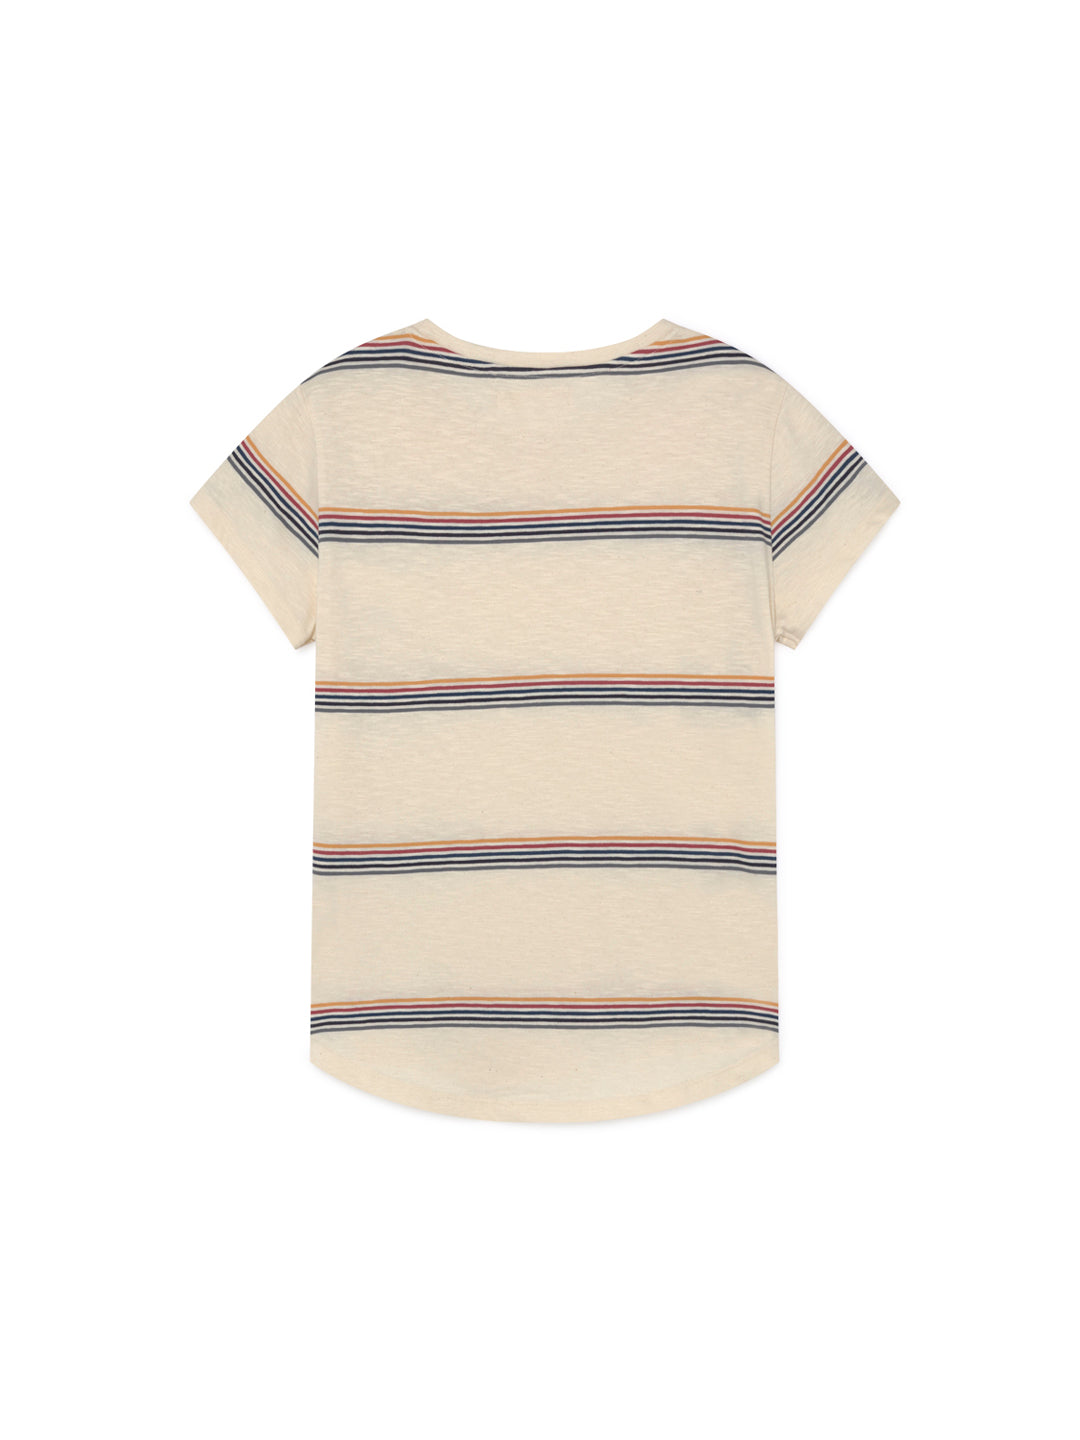 TWOTHIRDS Womens Tee: Leyte - Ecrue back